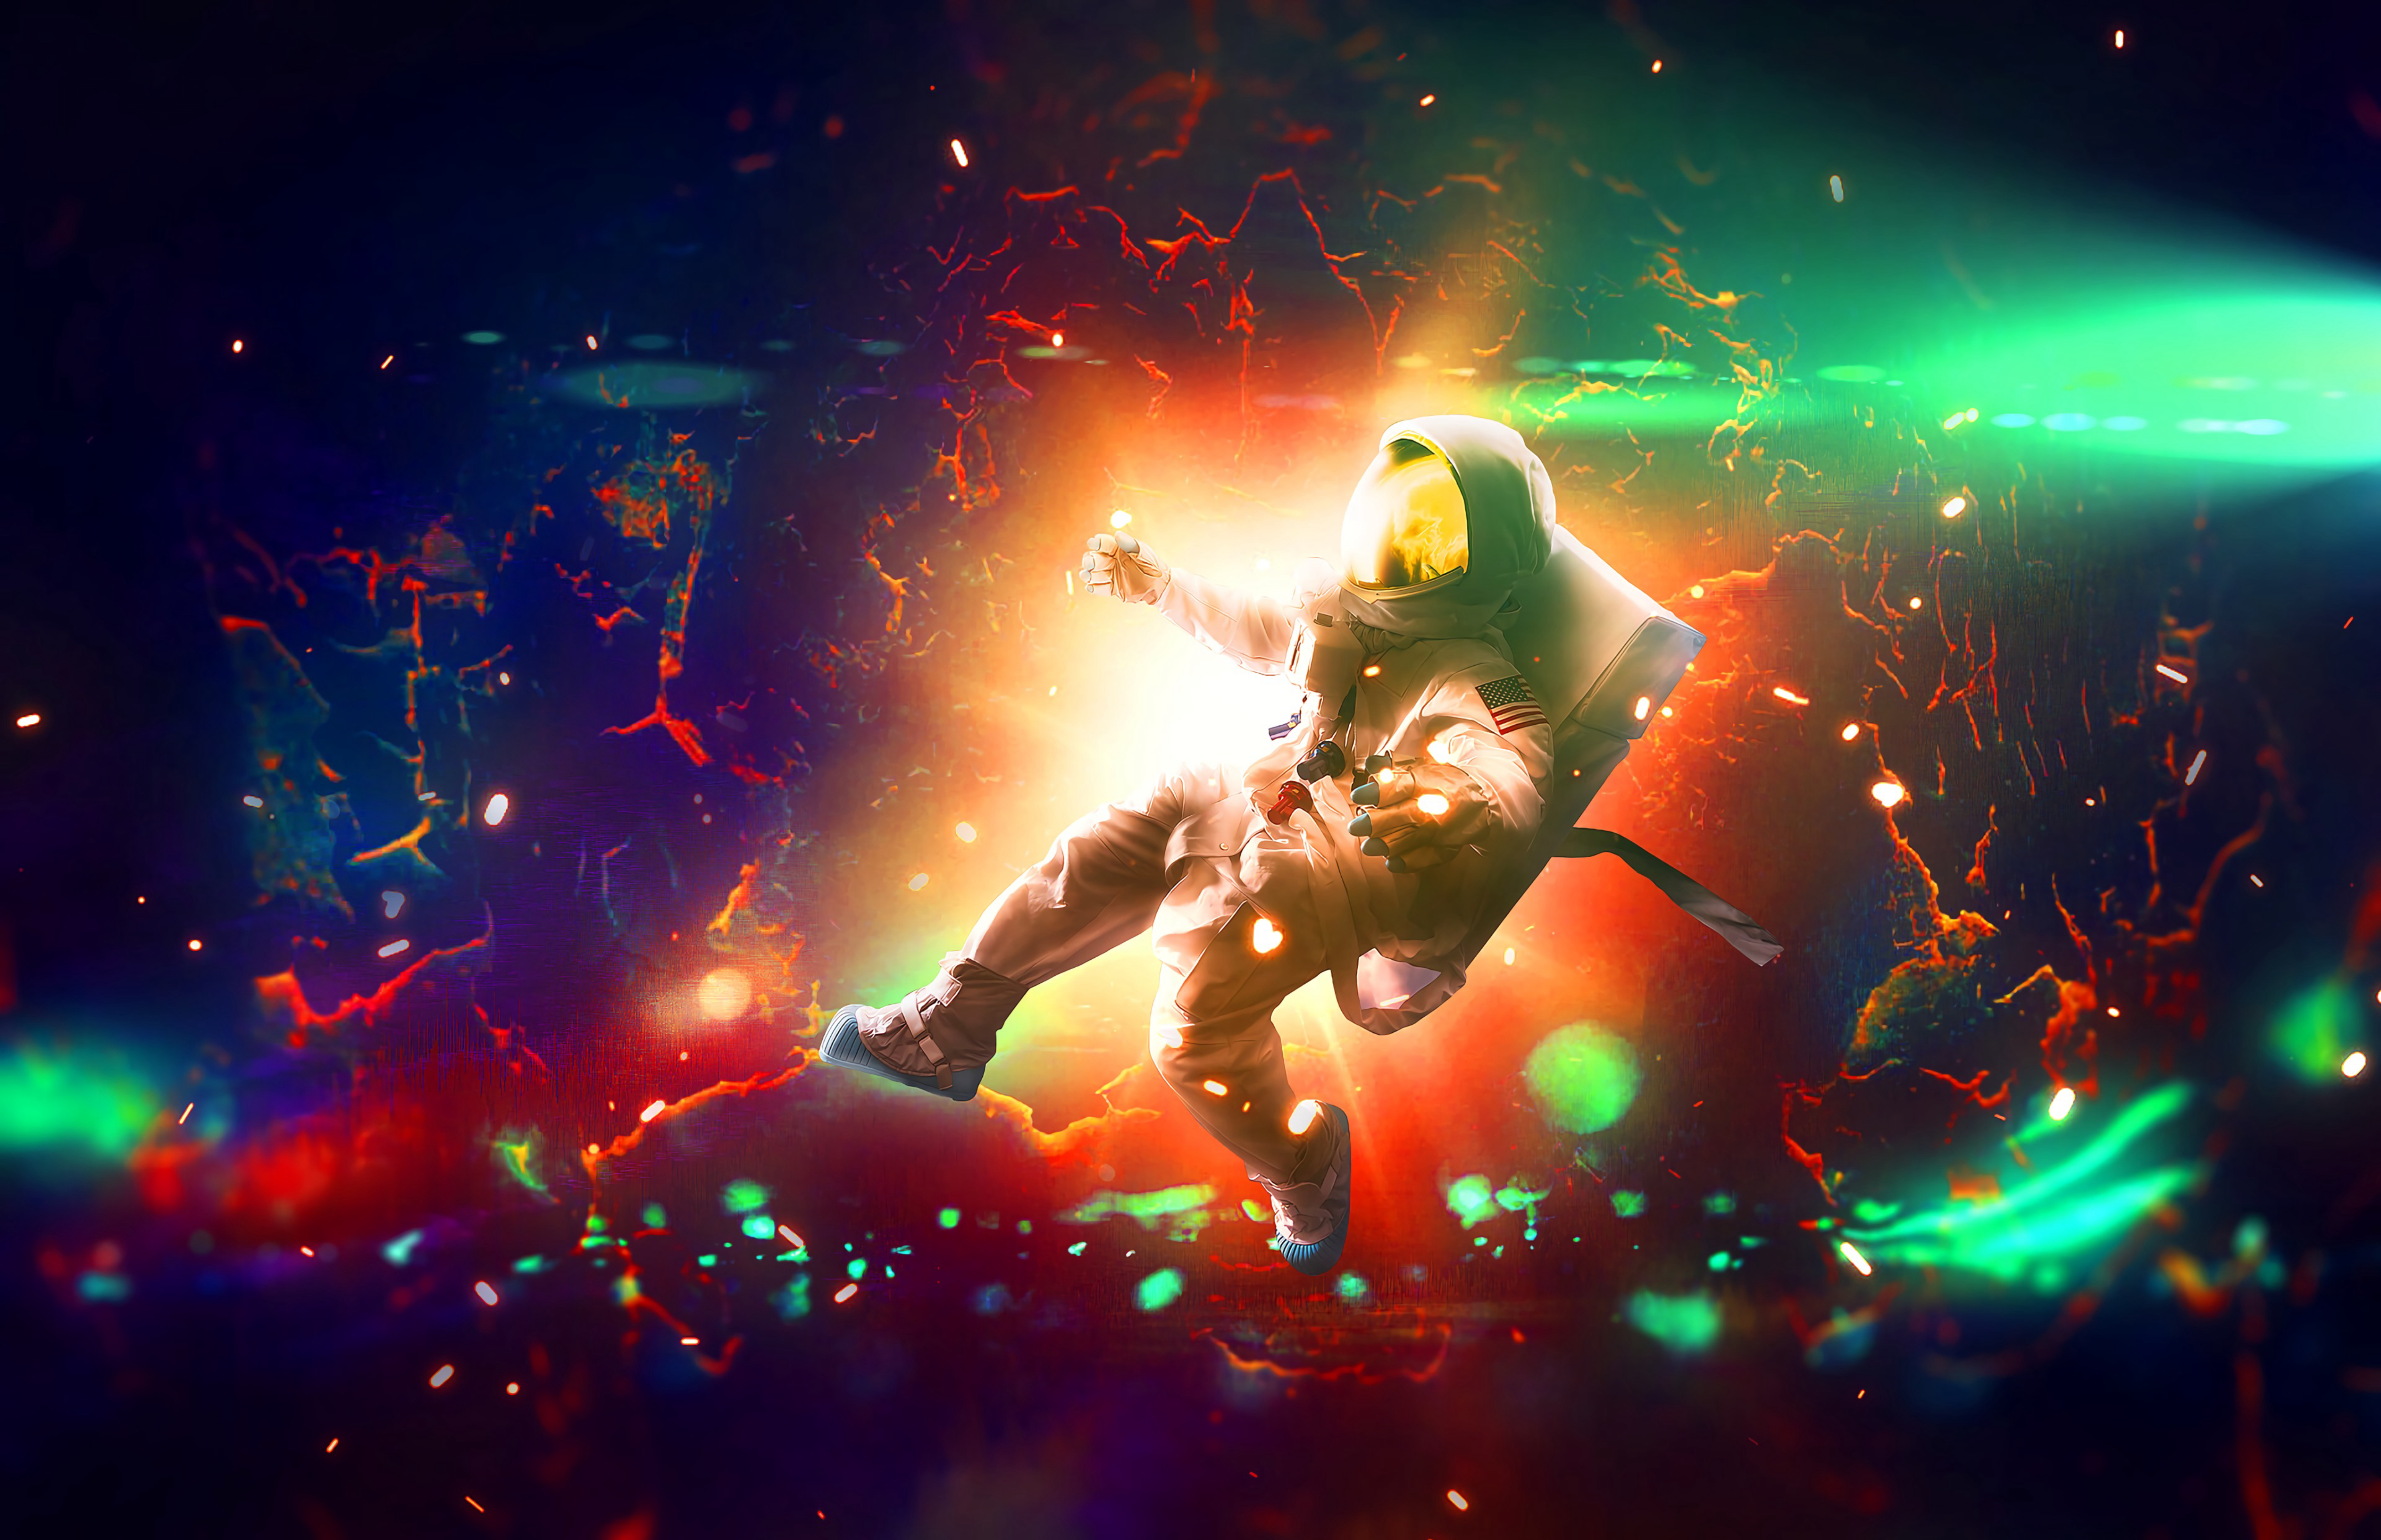 152386 Screensavers and Wallpapers Sparks for phone. Download Universe, Bright, Sparks, Multicolored, Motley, Flash, Astronaut pictures for free